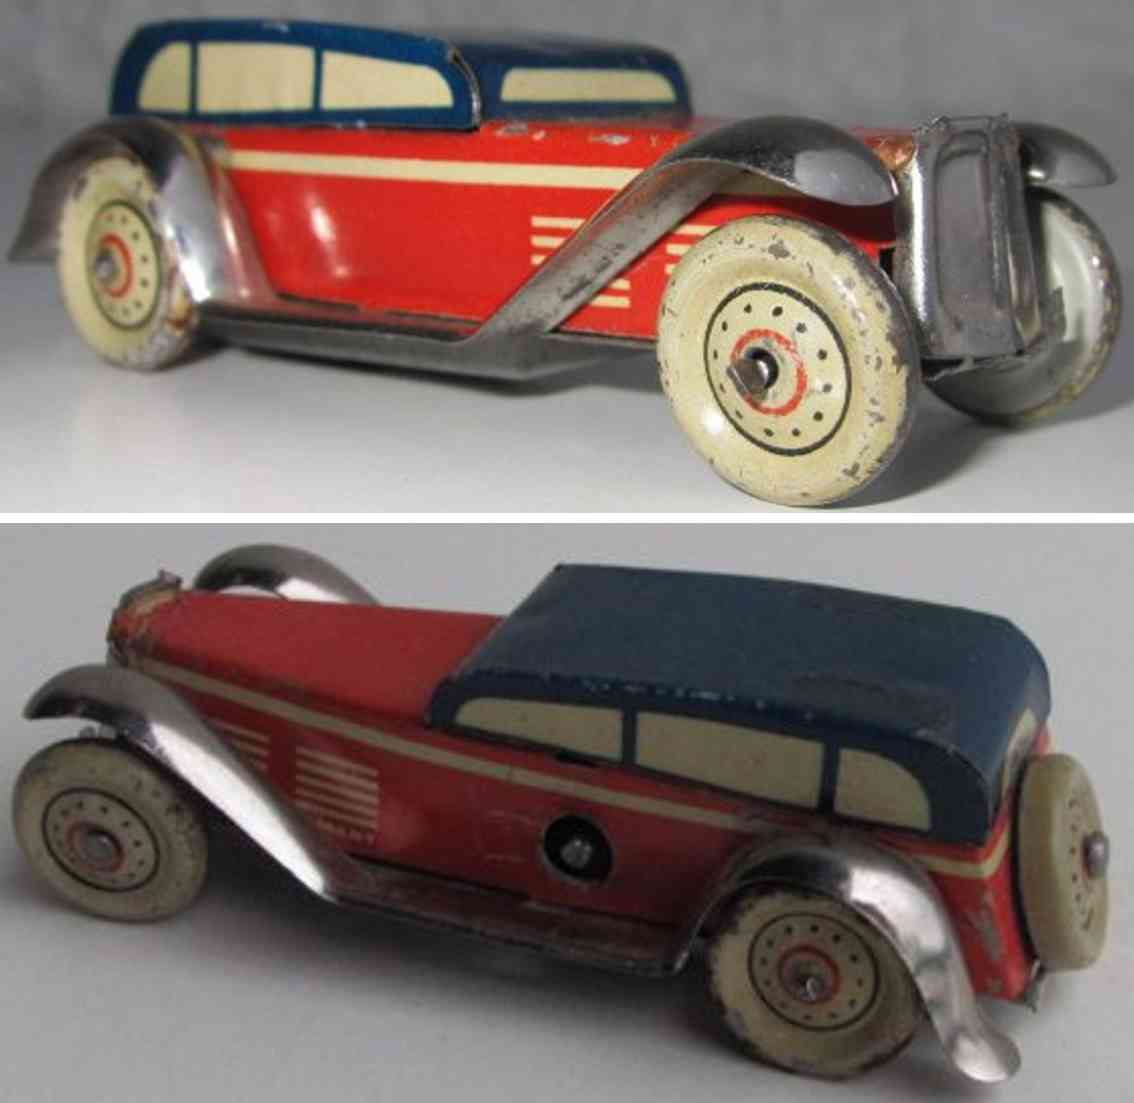 fischer georg penny toy limousine with clockwork